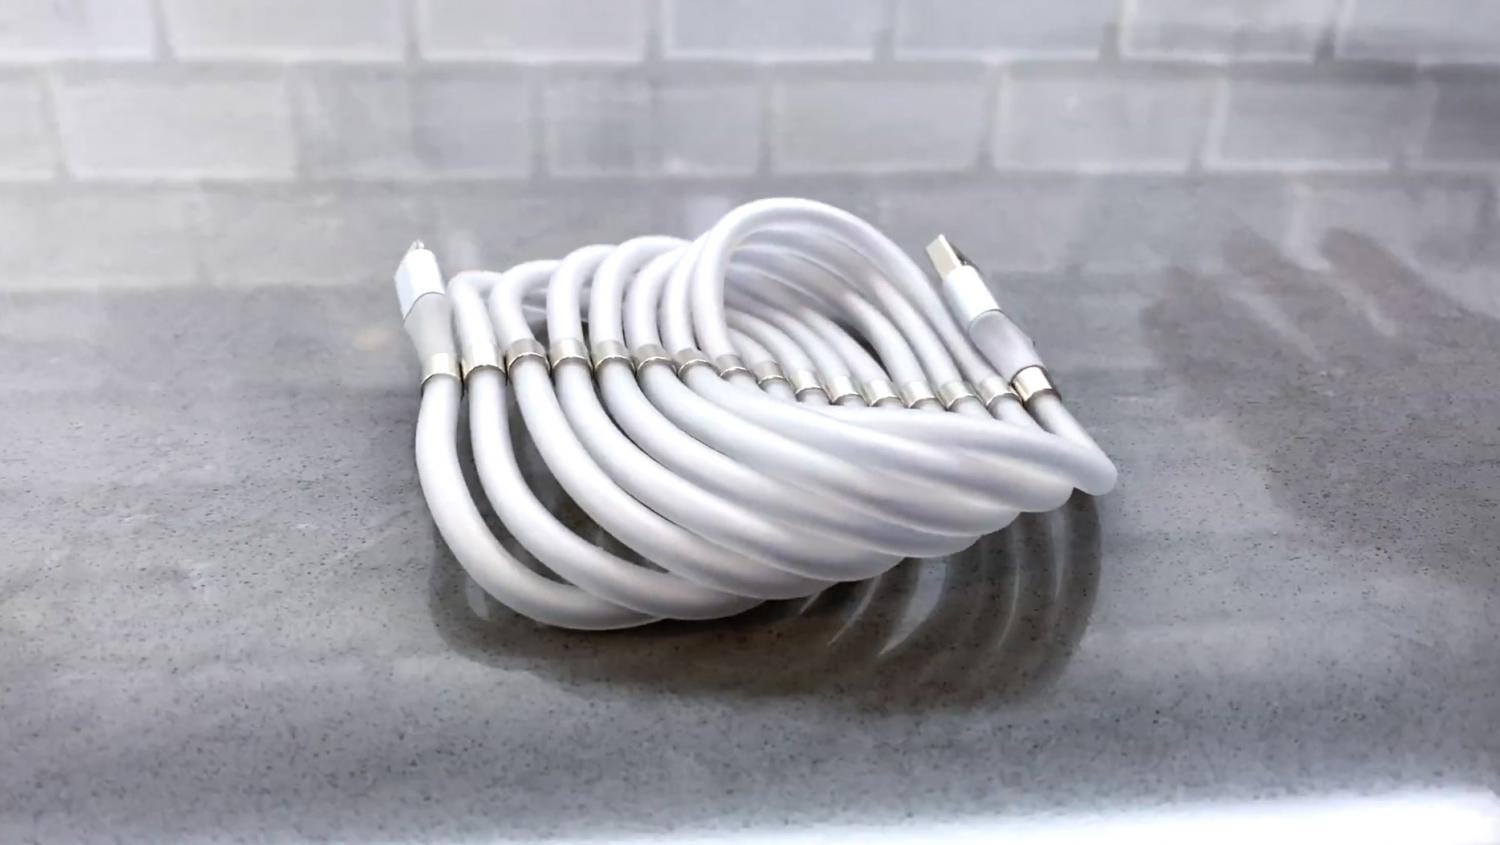 SuperCalla Magnetic Charging Cable - Best organized charging cable